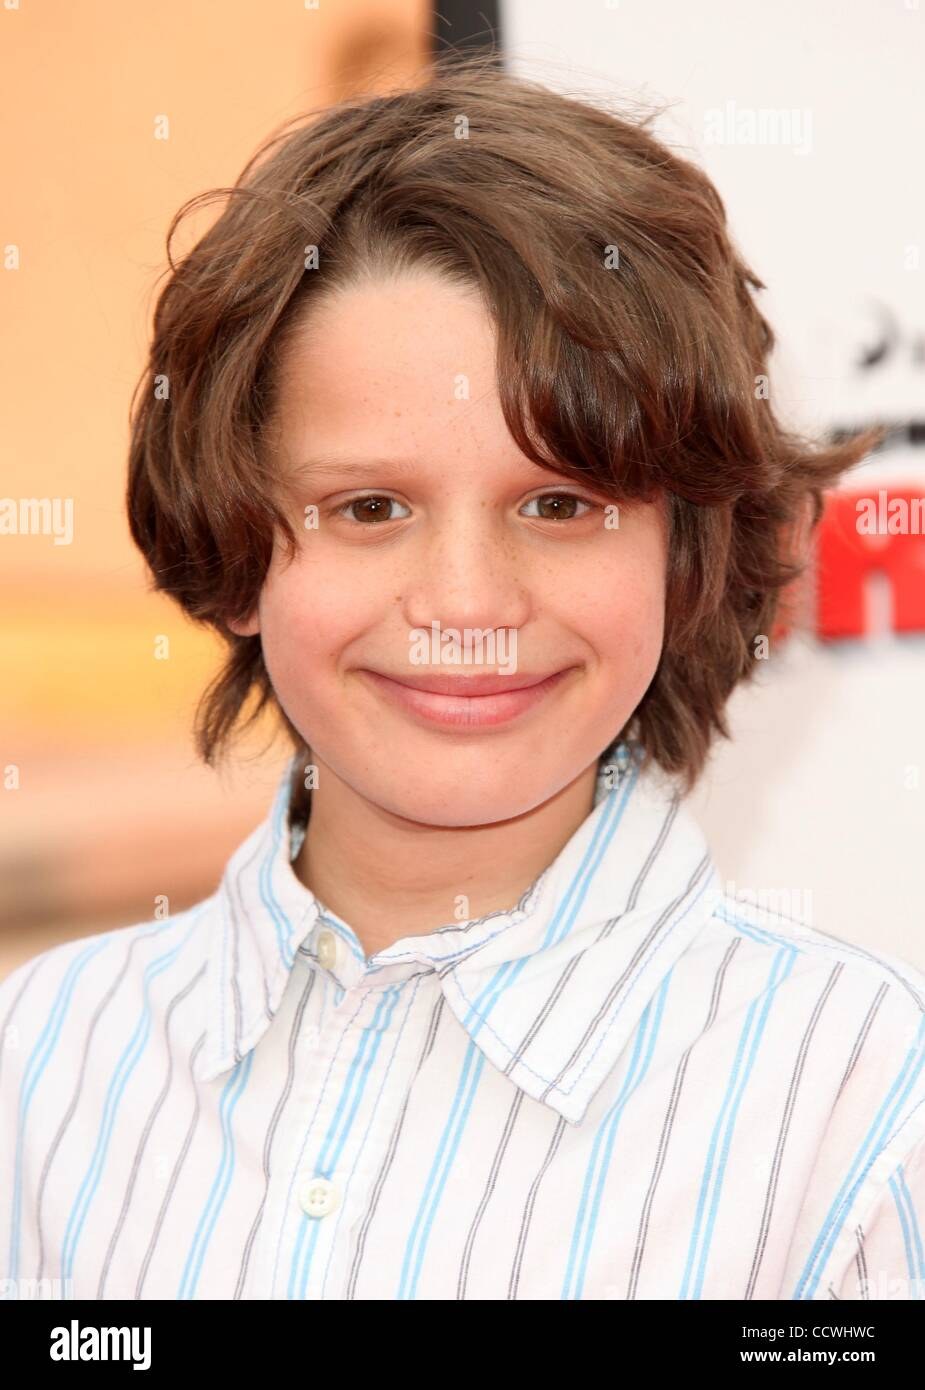 """Mar 21, 2010 - Universal City, California, USA - Actor BOBBY COLEMAN arriving to the """"How To Train Your Dragon"""" Stock Photo"""